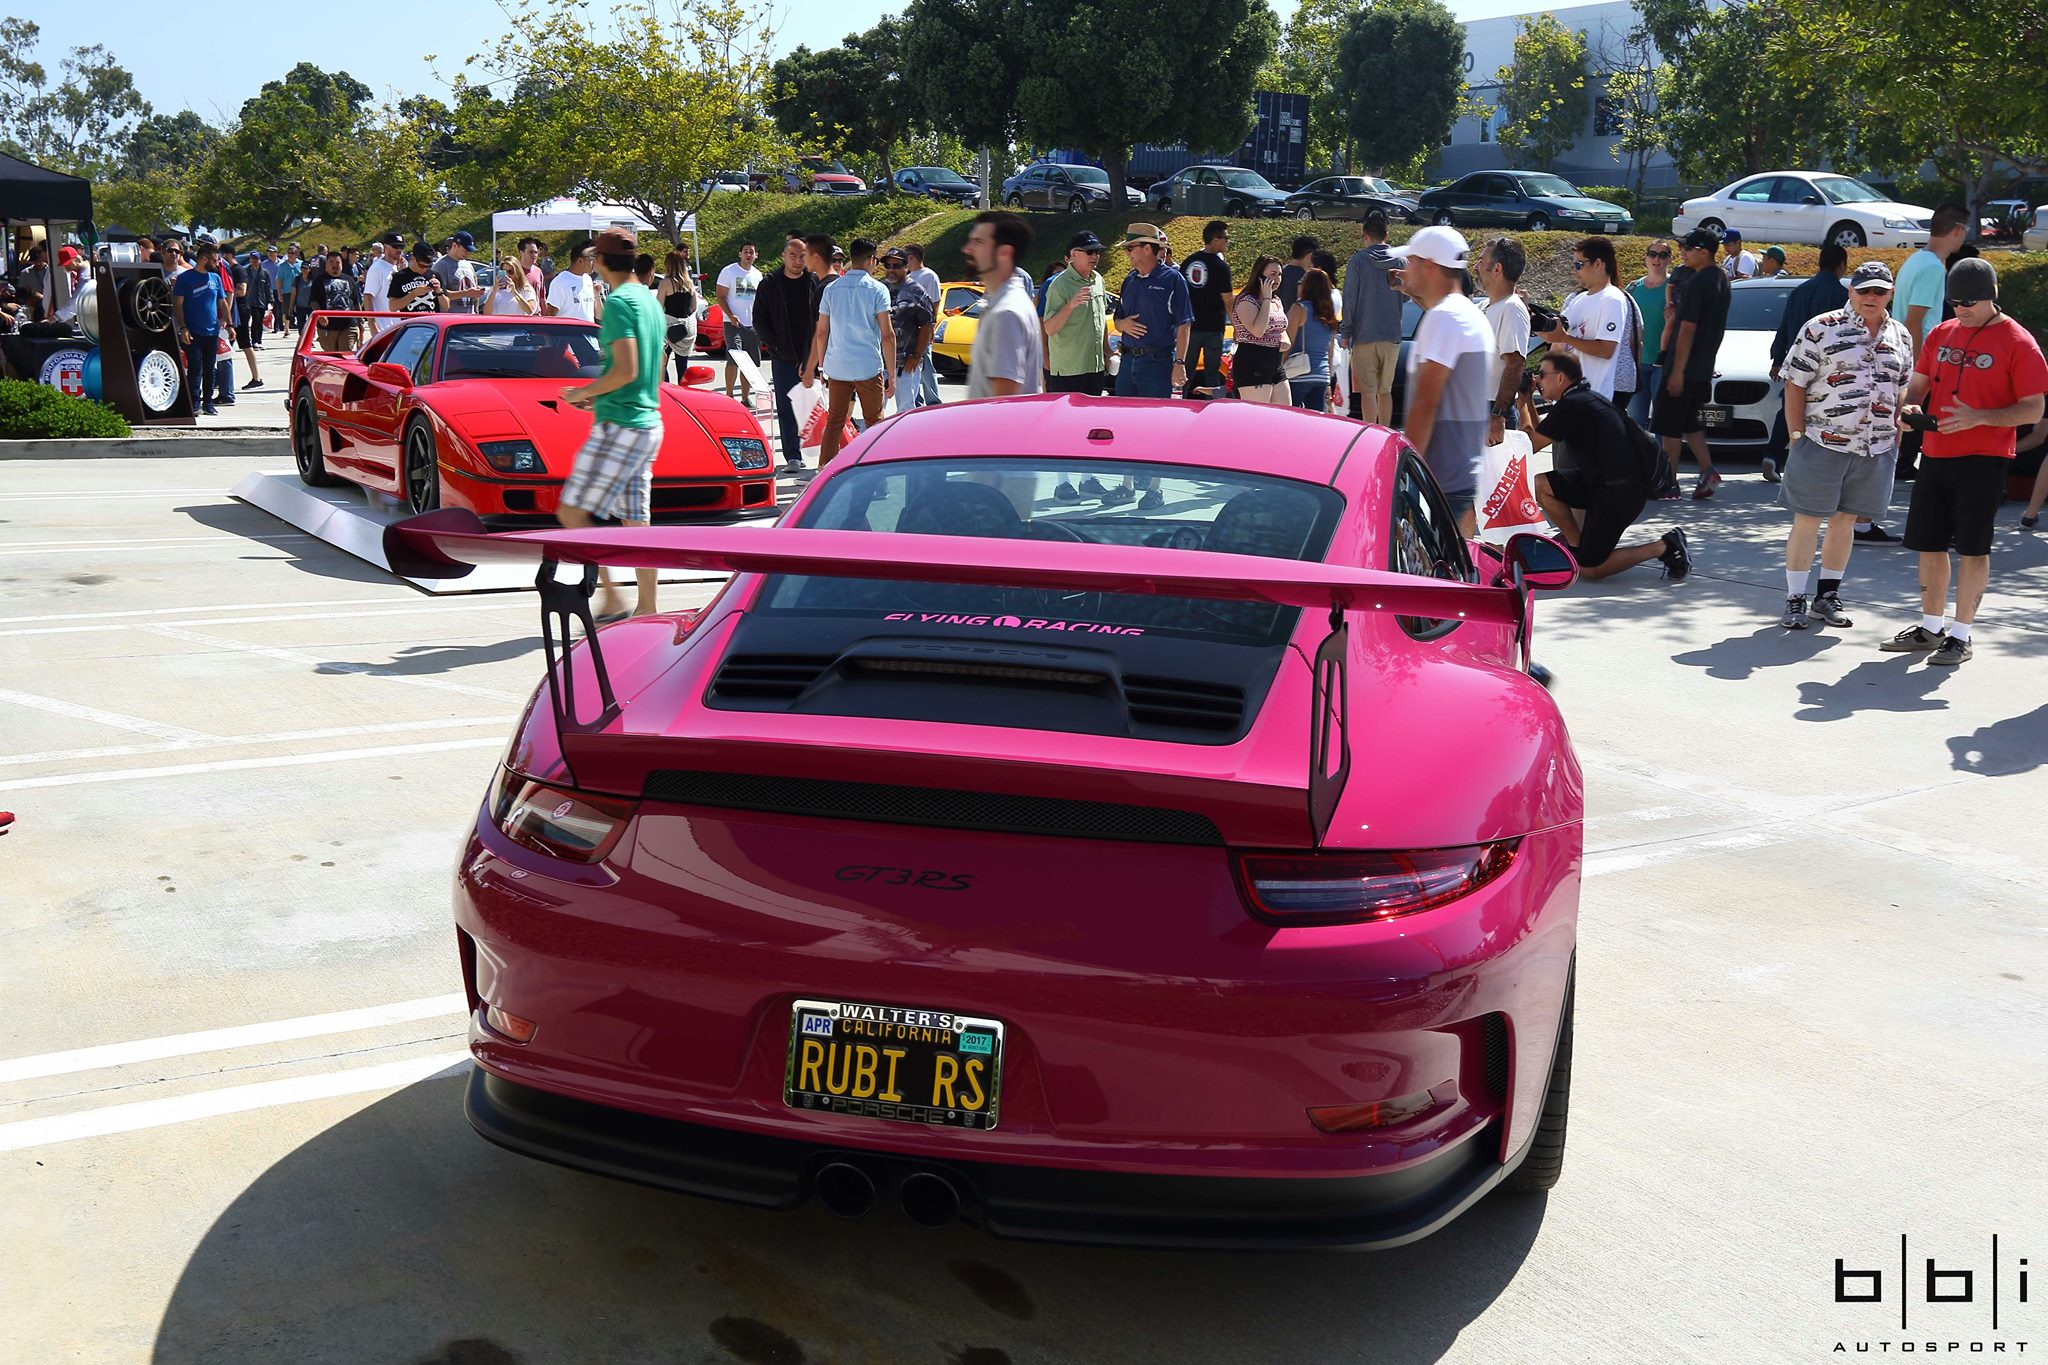 Ruby Star Porsche 911 GT3 RS